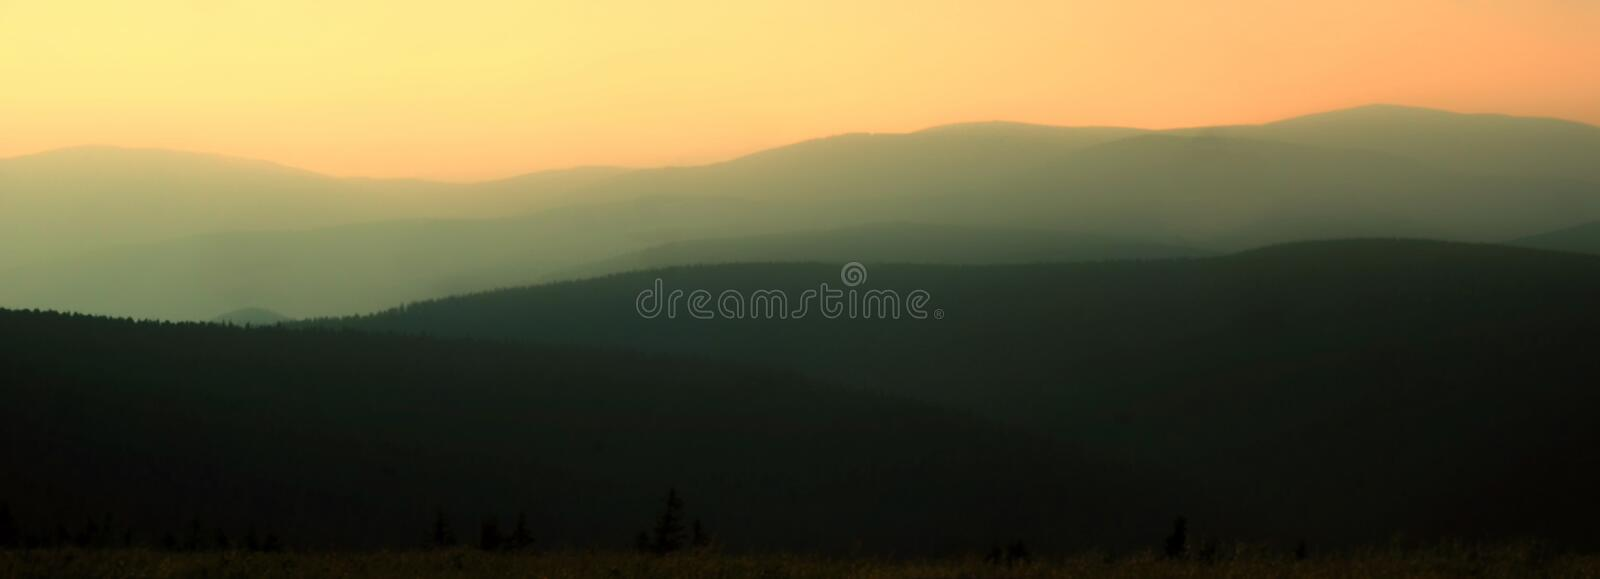 Natural background panorama background of scenic hilly landscape at dusk stock photo